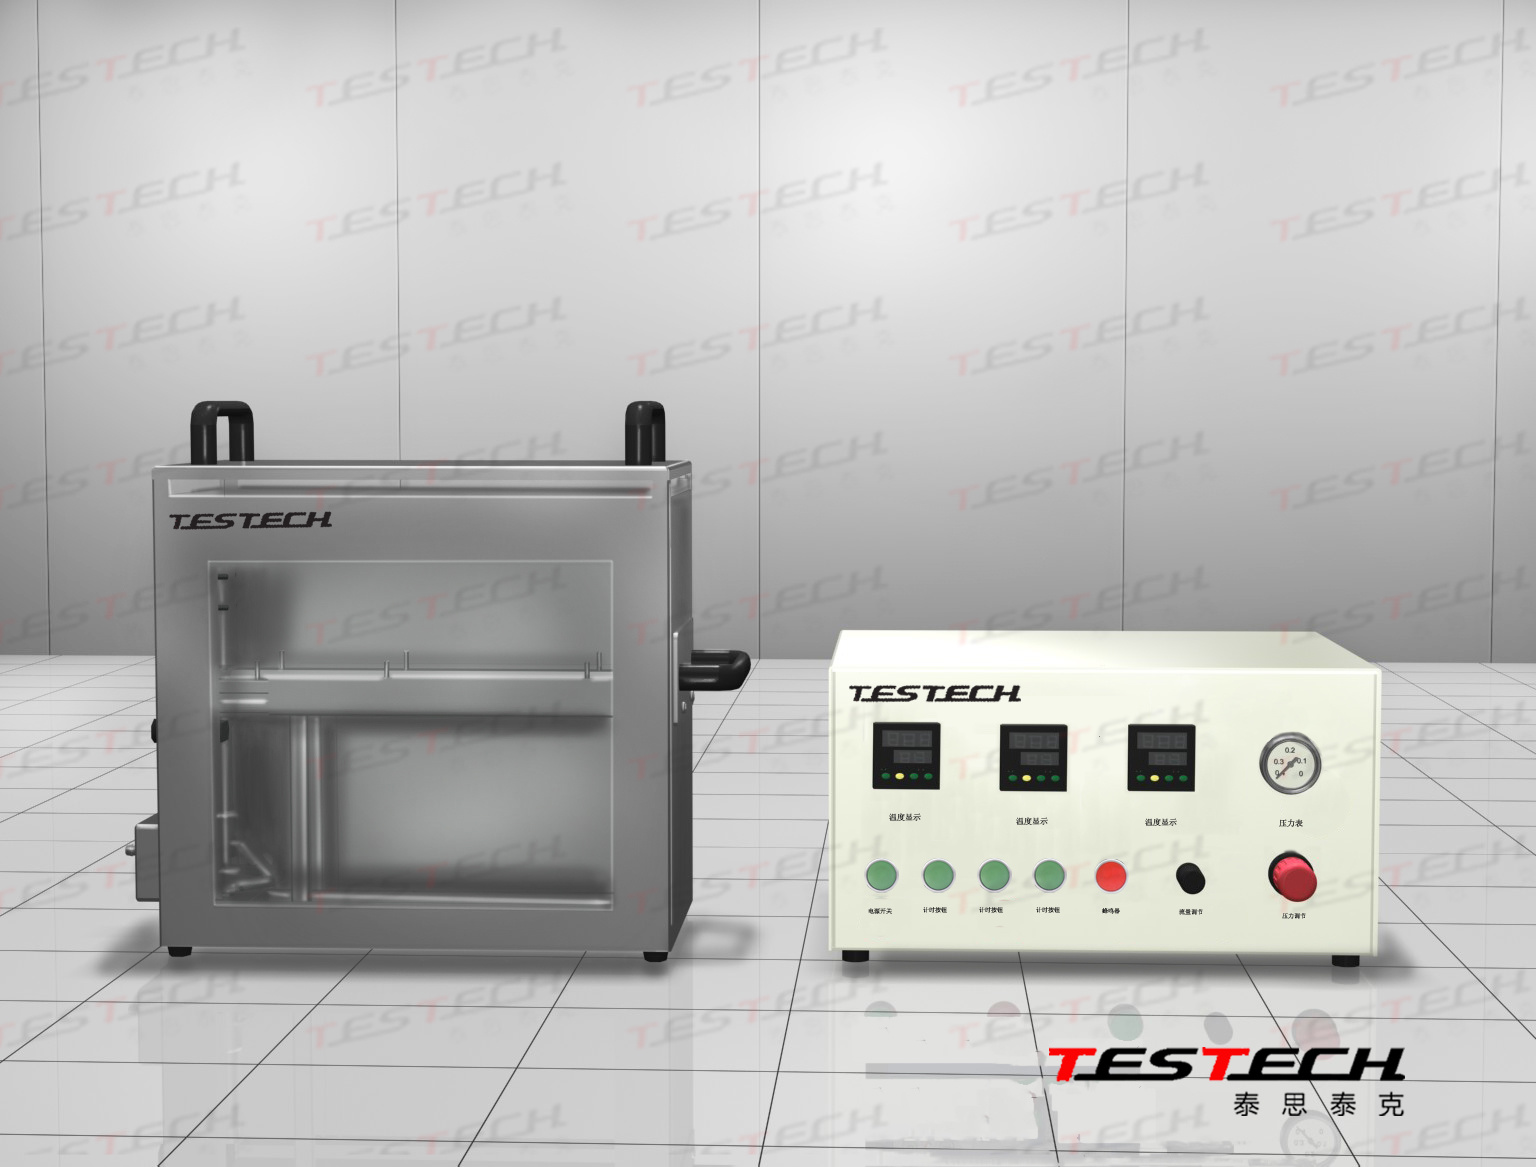 Motor Accessories Combustion Testing Machine, Fmvss 302 (FTech-ISO3795)